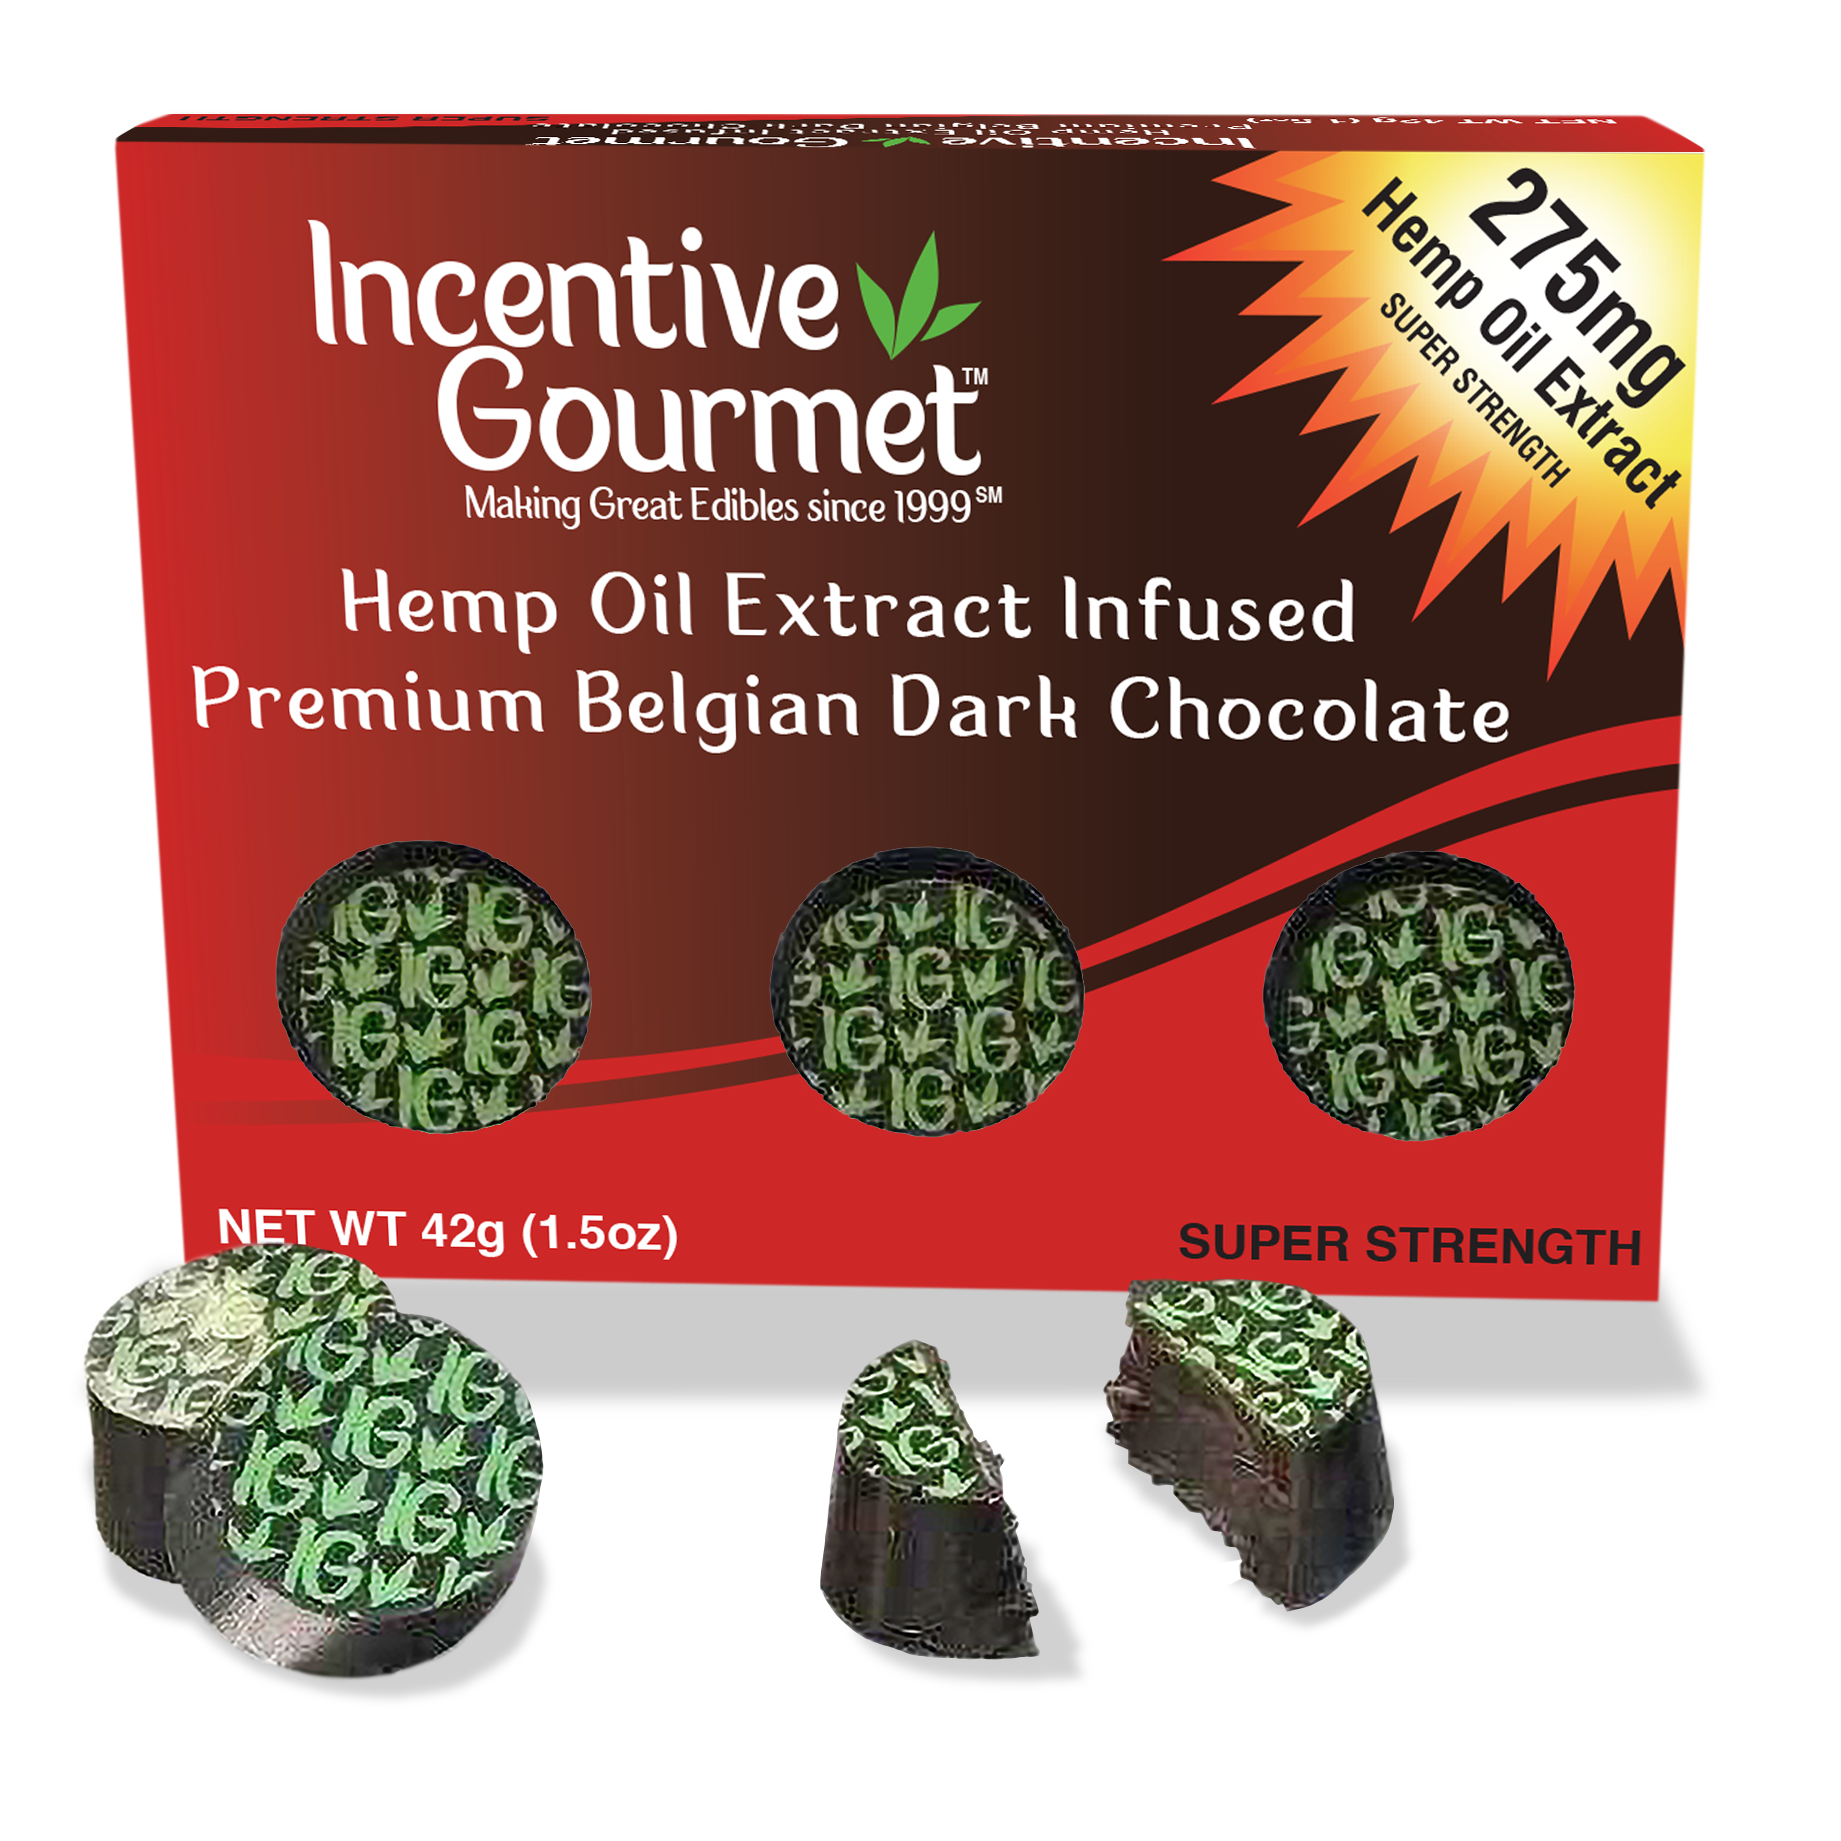 Hemp Oil Extract Infused Premium Belgian Dark Chocolate Box